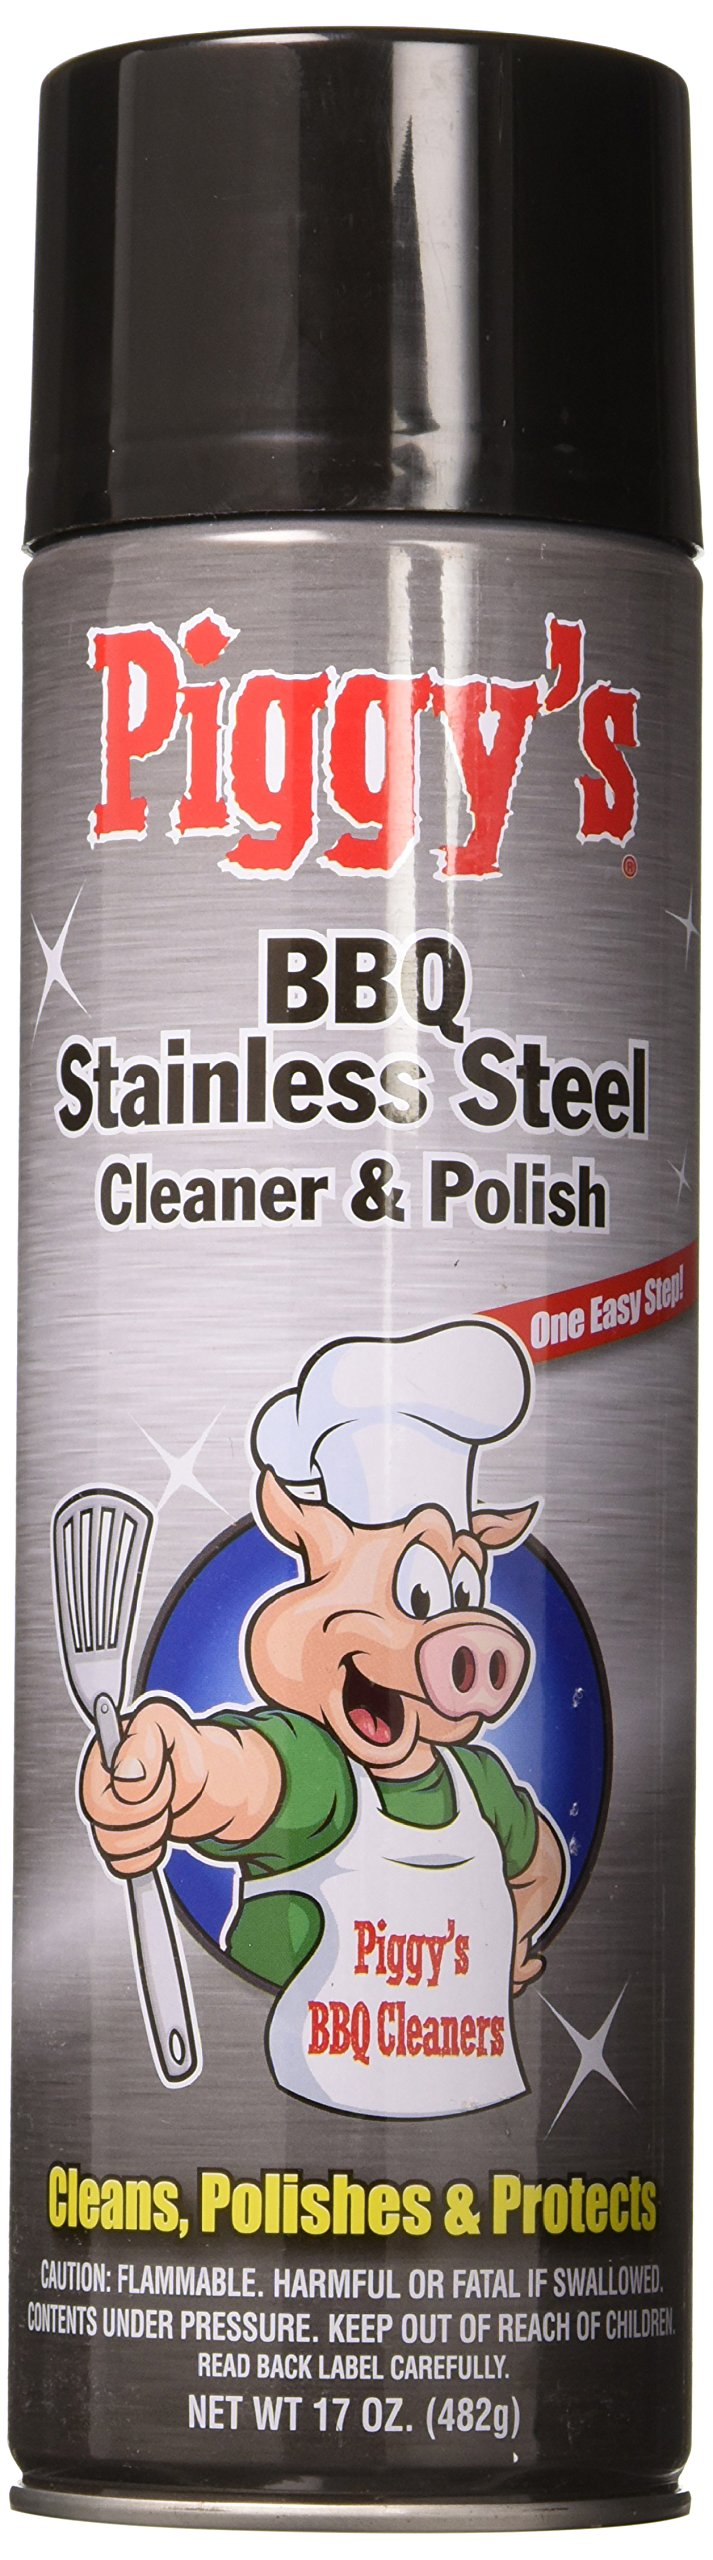 Max Professional 3668 BBQ Stainless Steel Cleaner44; 19 oz.